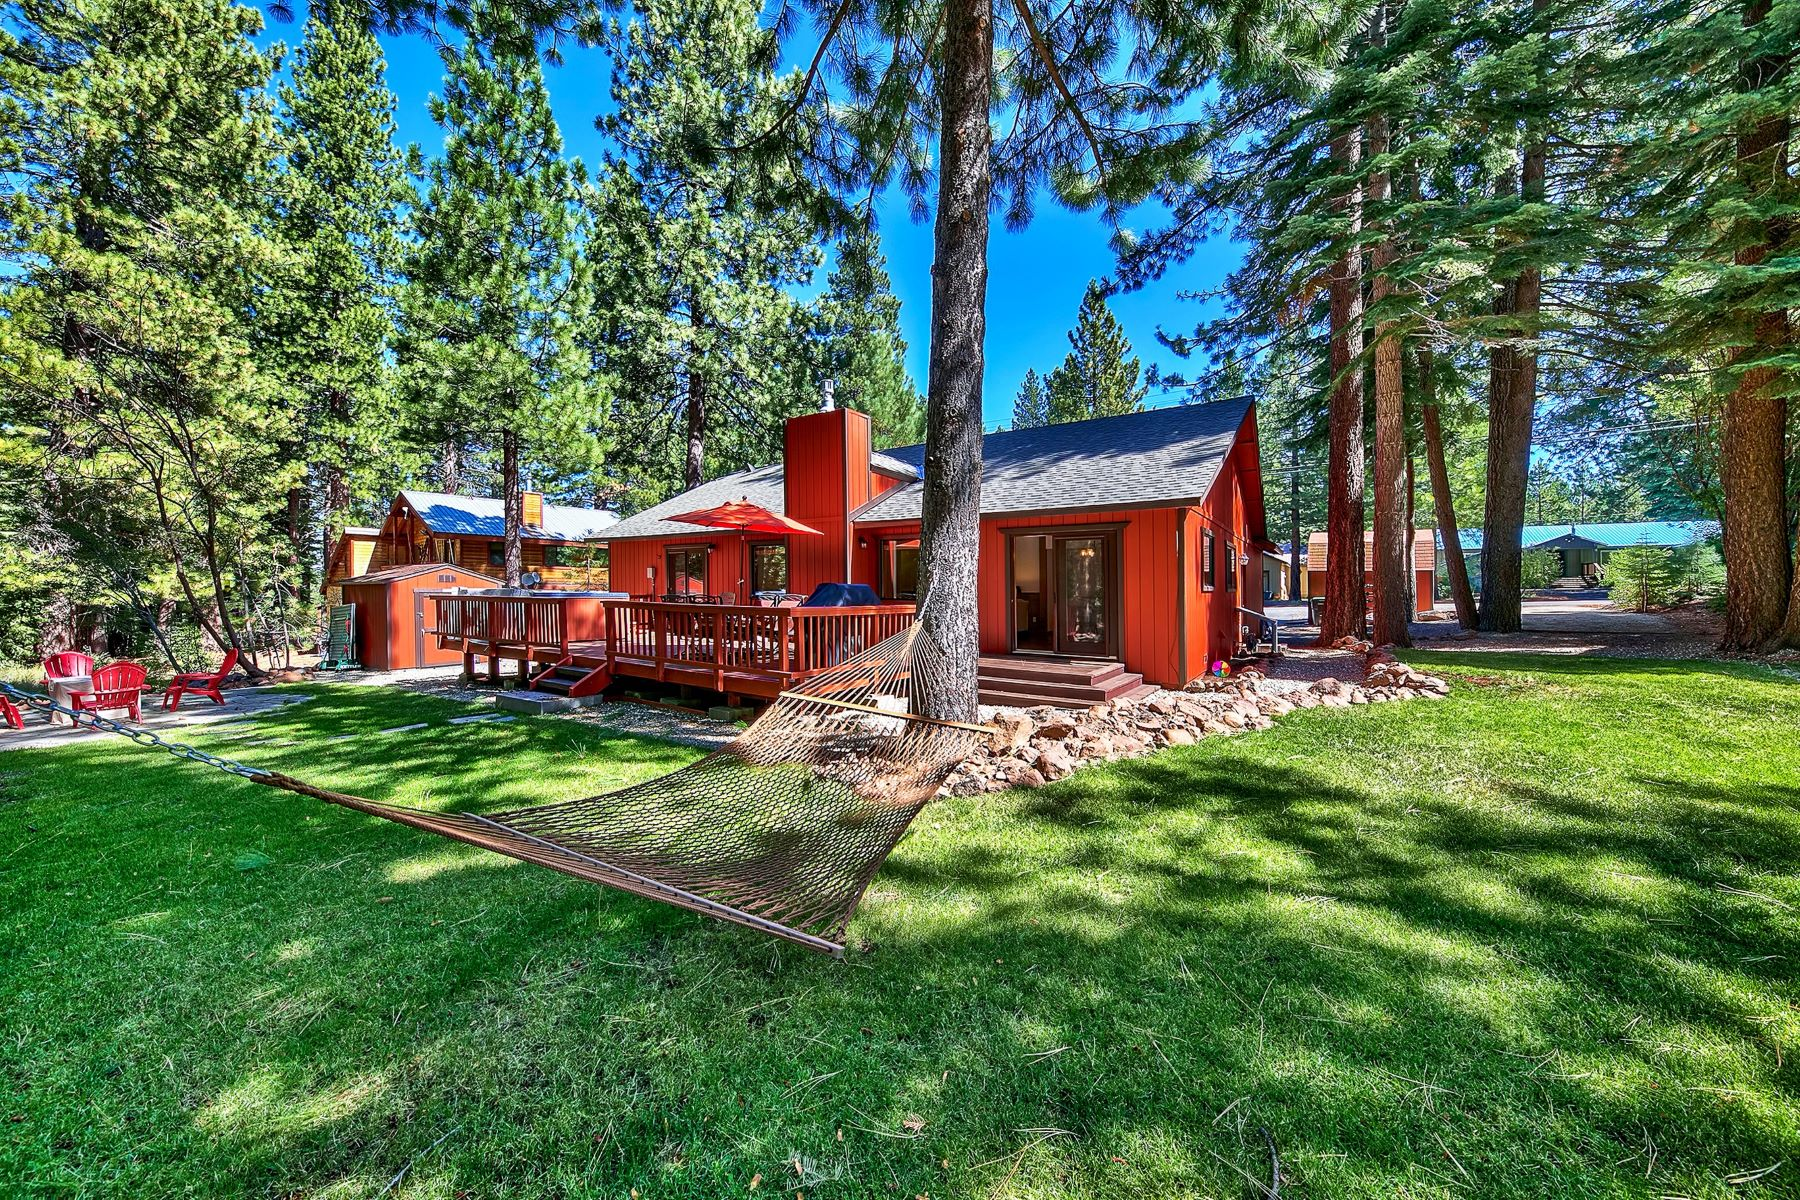 Single Family Homes for Active at 10476 Ponderosa Drive, Truckee, CA 96145 10476 Ponderosa Drive Truckee, California 96145 United States